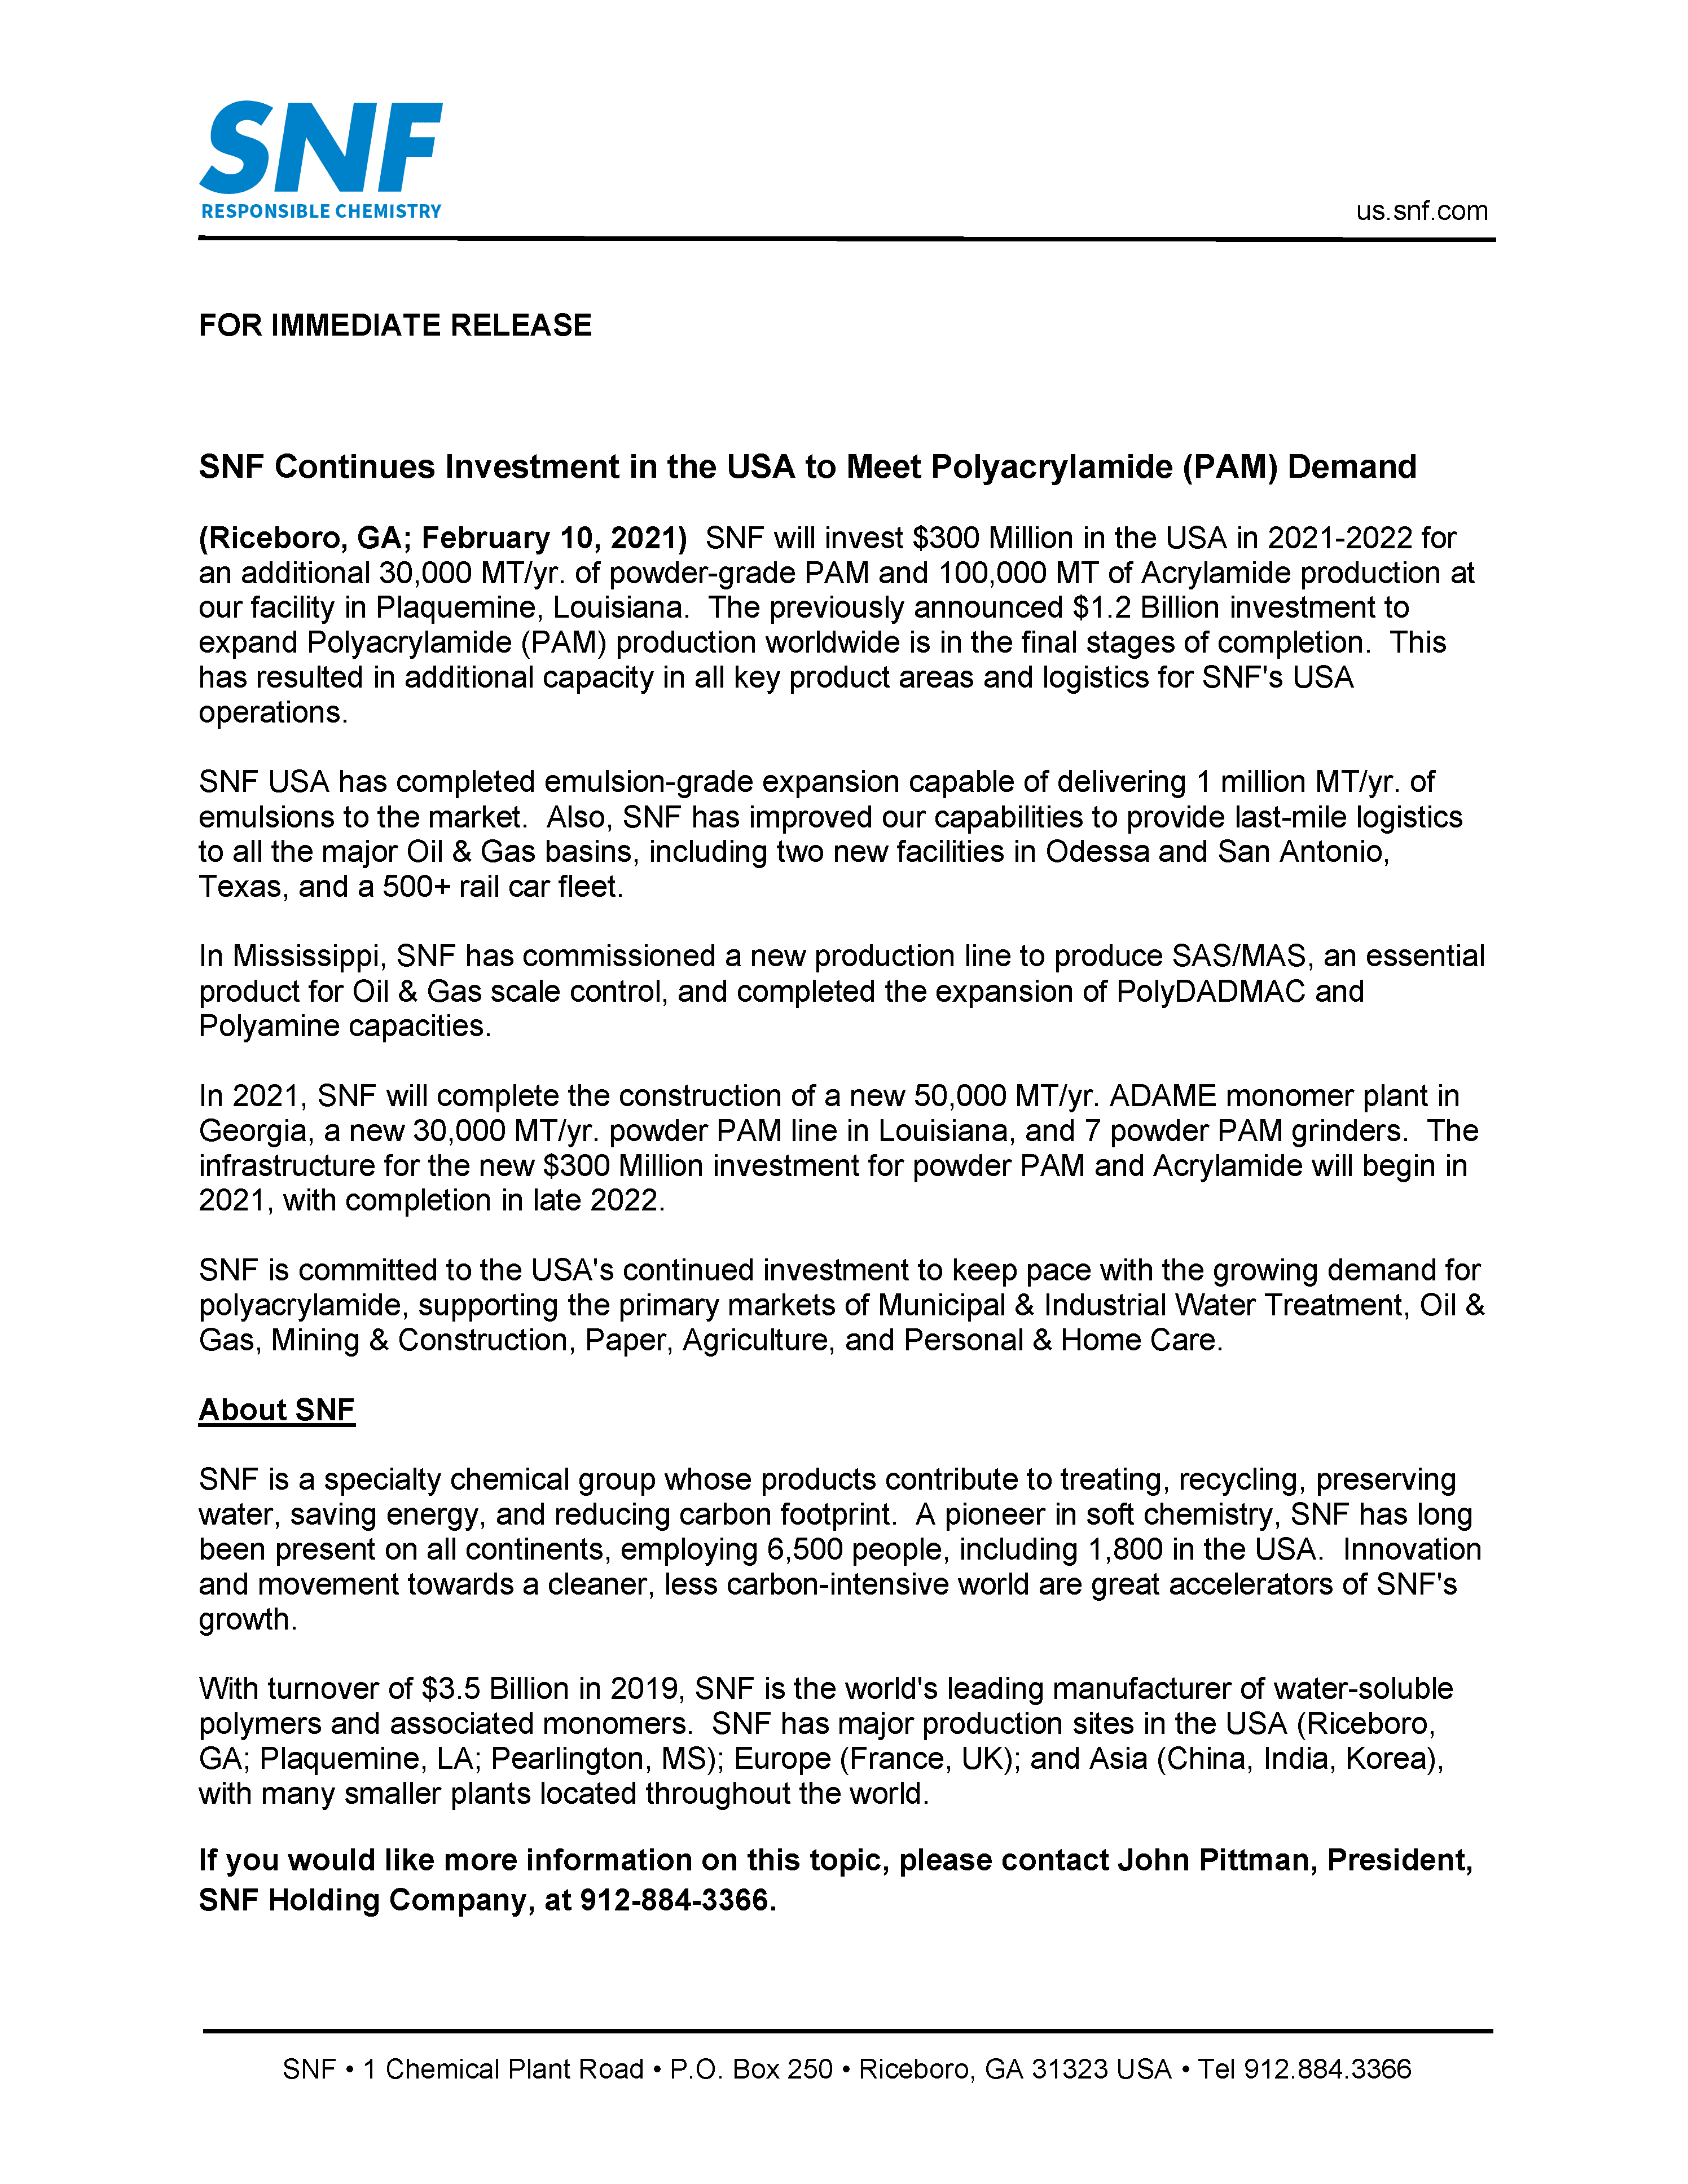 Press Release US Investments 2021 2 10   SNF U.S.A.